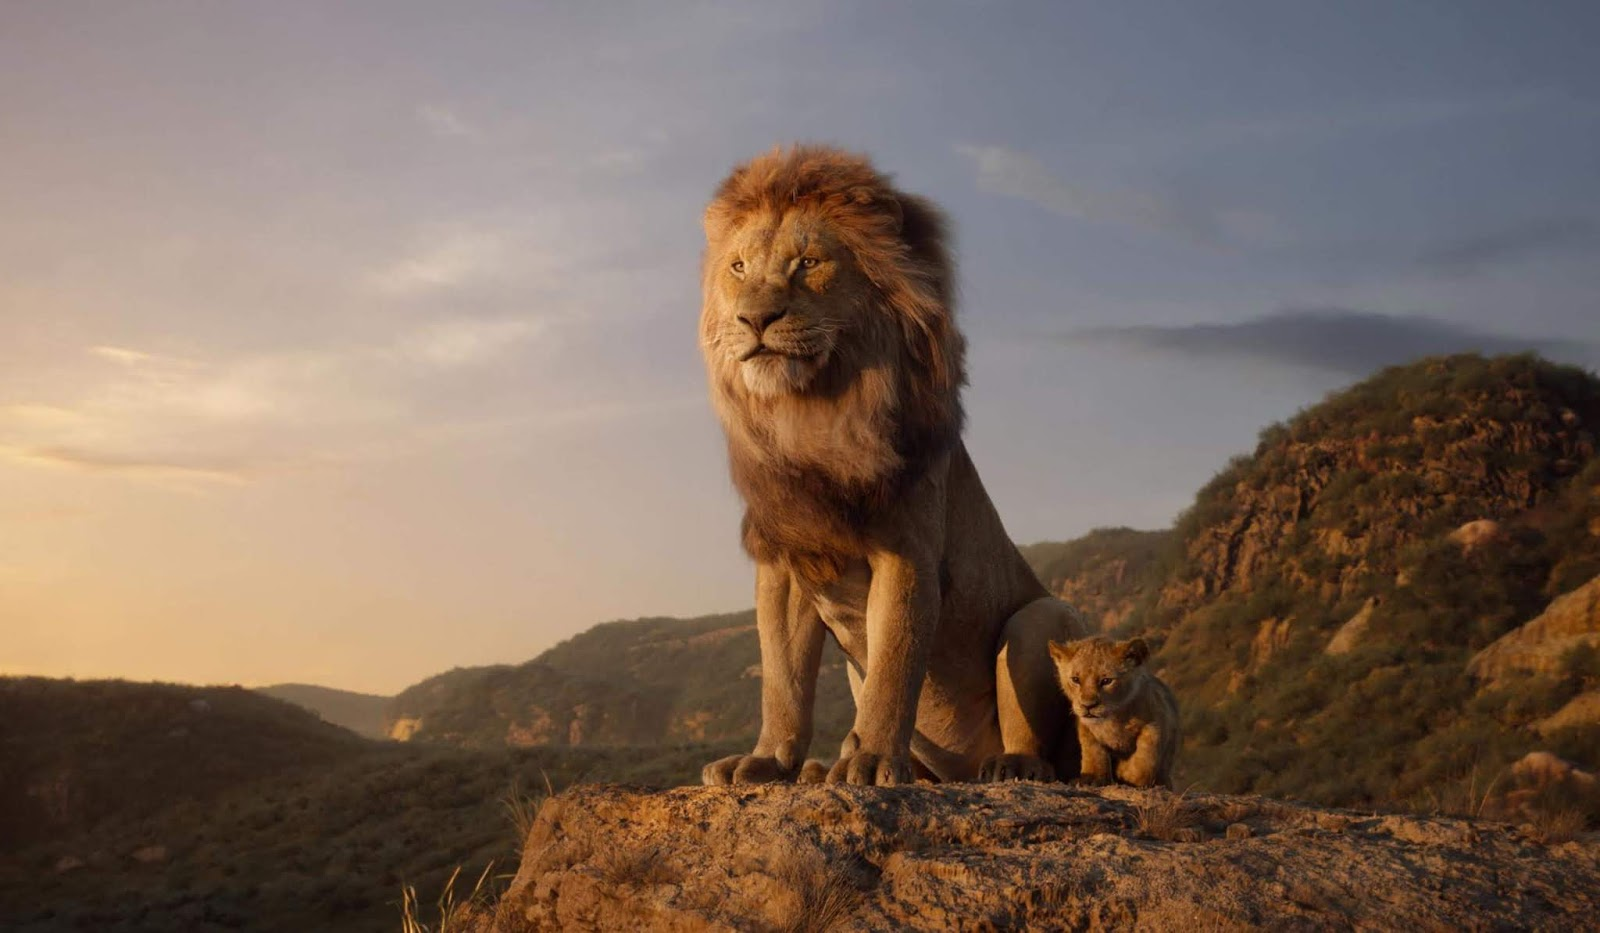 The Lion King trailer gives us Scar, Timon, Pumbaa, and more